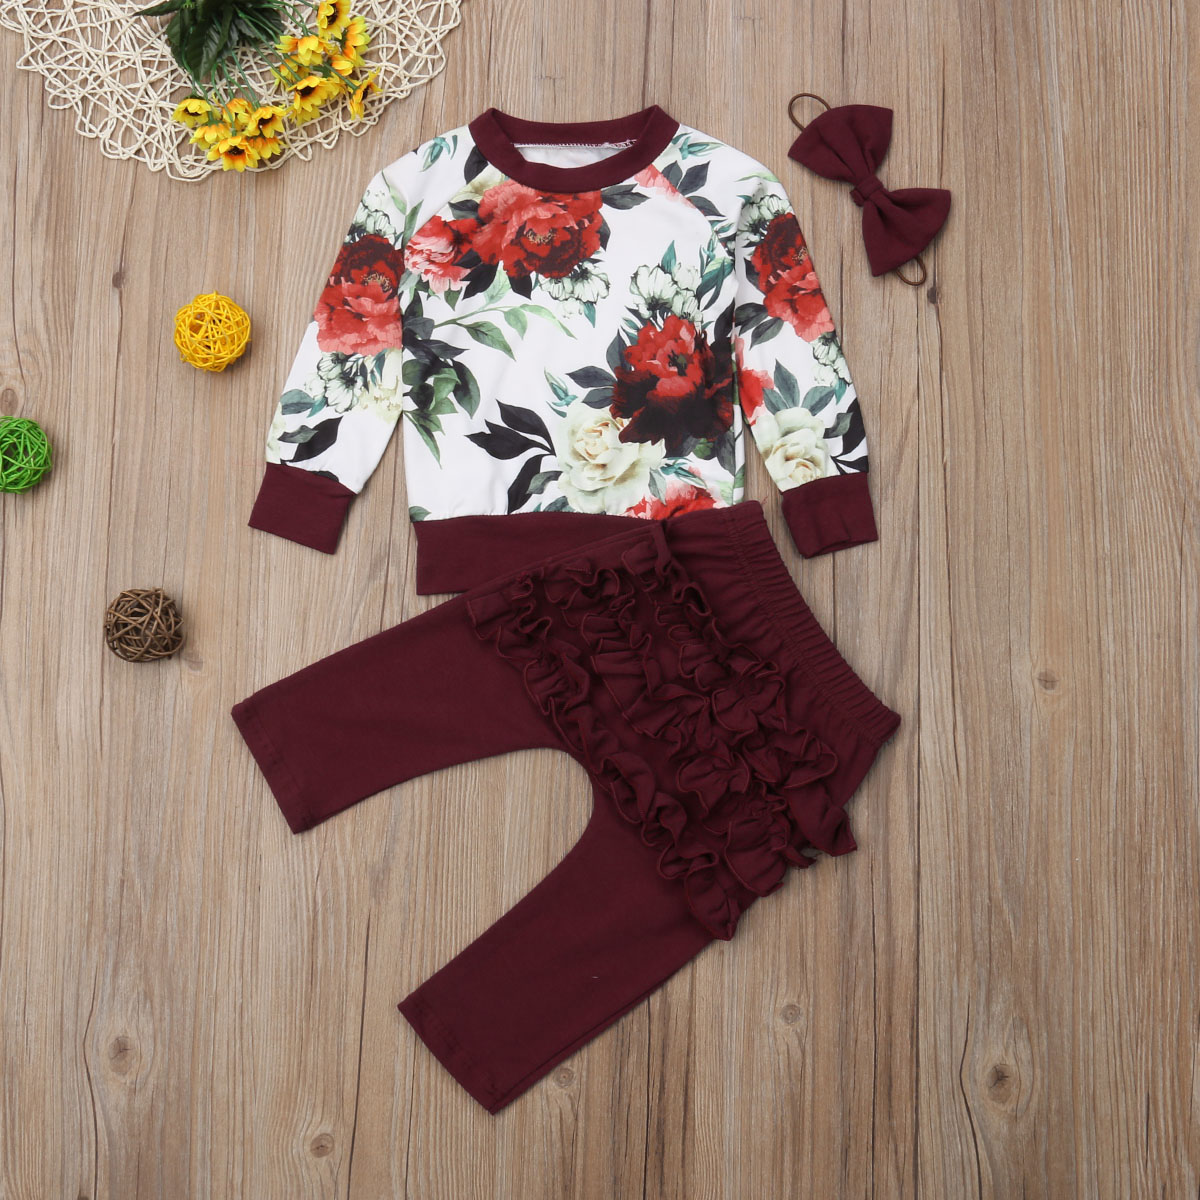 <font><b>Autumn</b></font> Winter Toddler <font><b>Newborn</b></font> <font><b>Baby</b></font> <font><b>Girl</b></font> <font><b>Clothes</b></font> Set Outfits Long Sleeve Printed T Shirt and Ruffle Pants 3Pcs Set <font><b>Baby</b></font> Clothing image